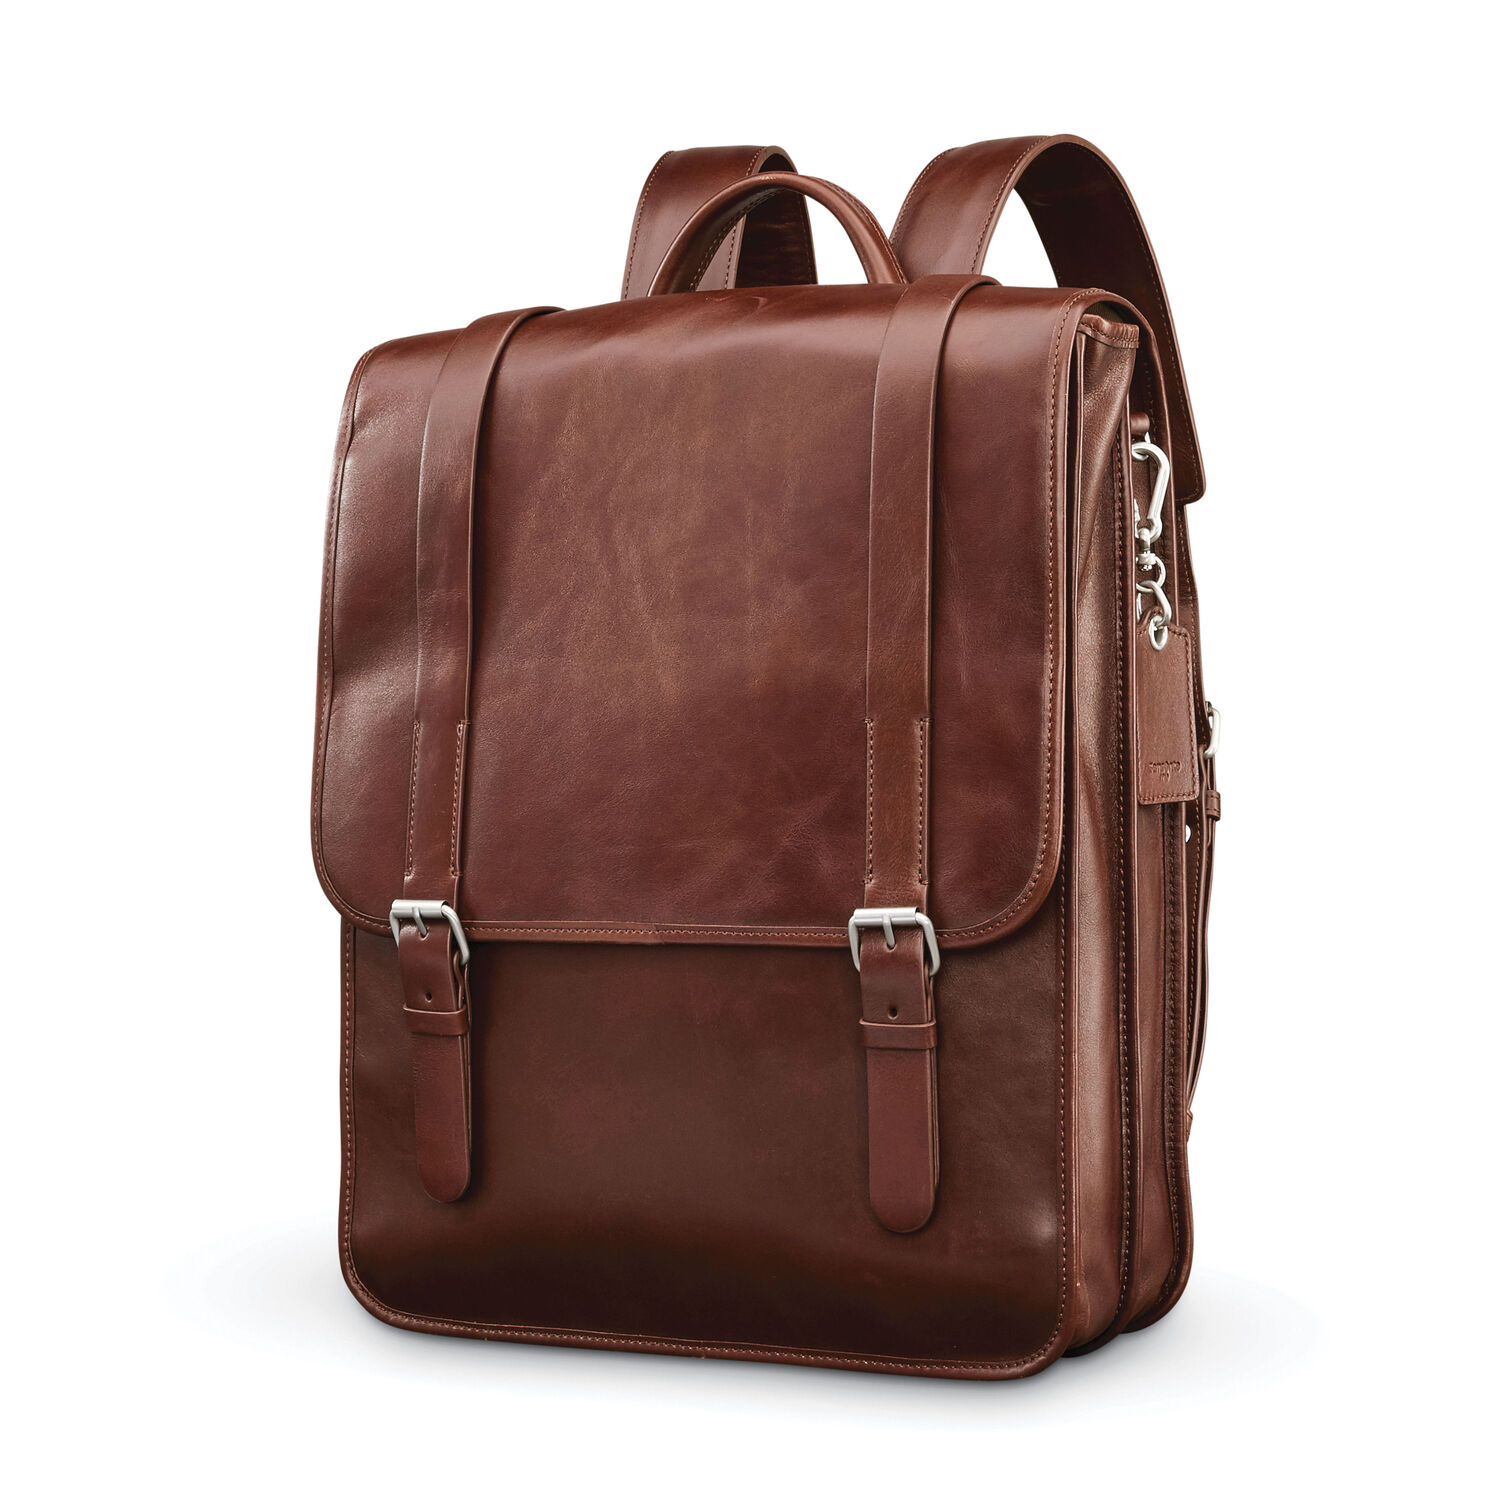 12d0157de485 Samsonite Mens Leather 1910 Heritage Backpack in the color Chestnut.